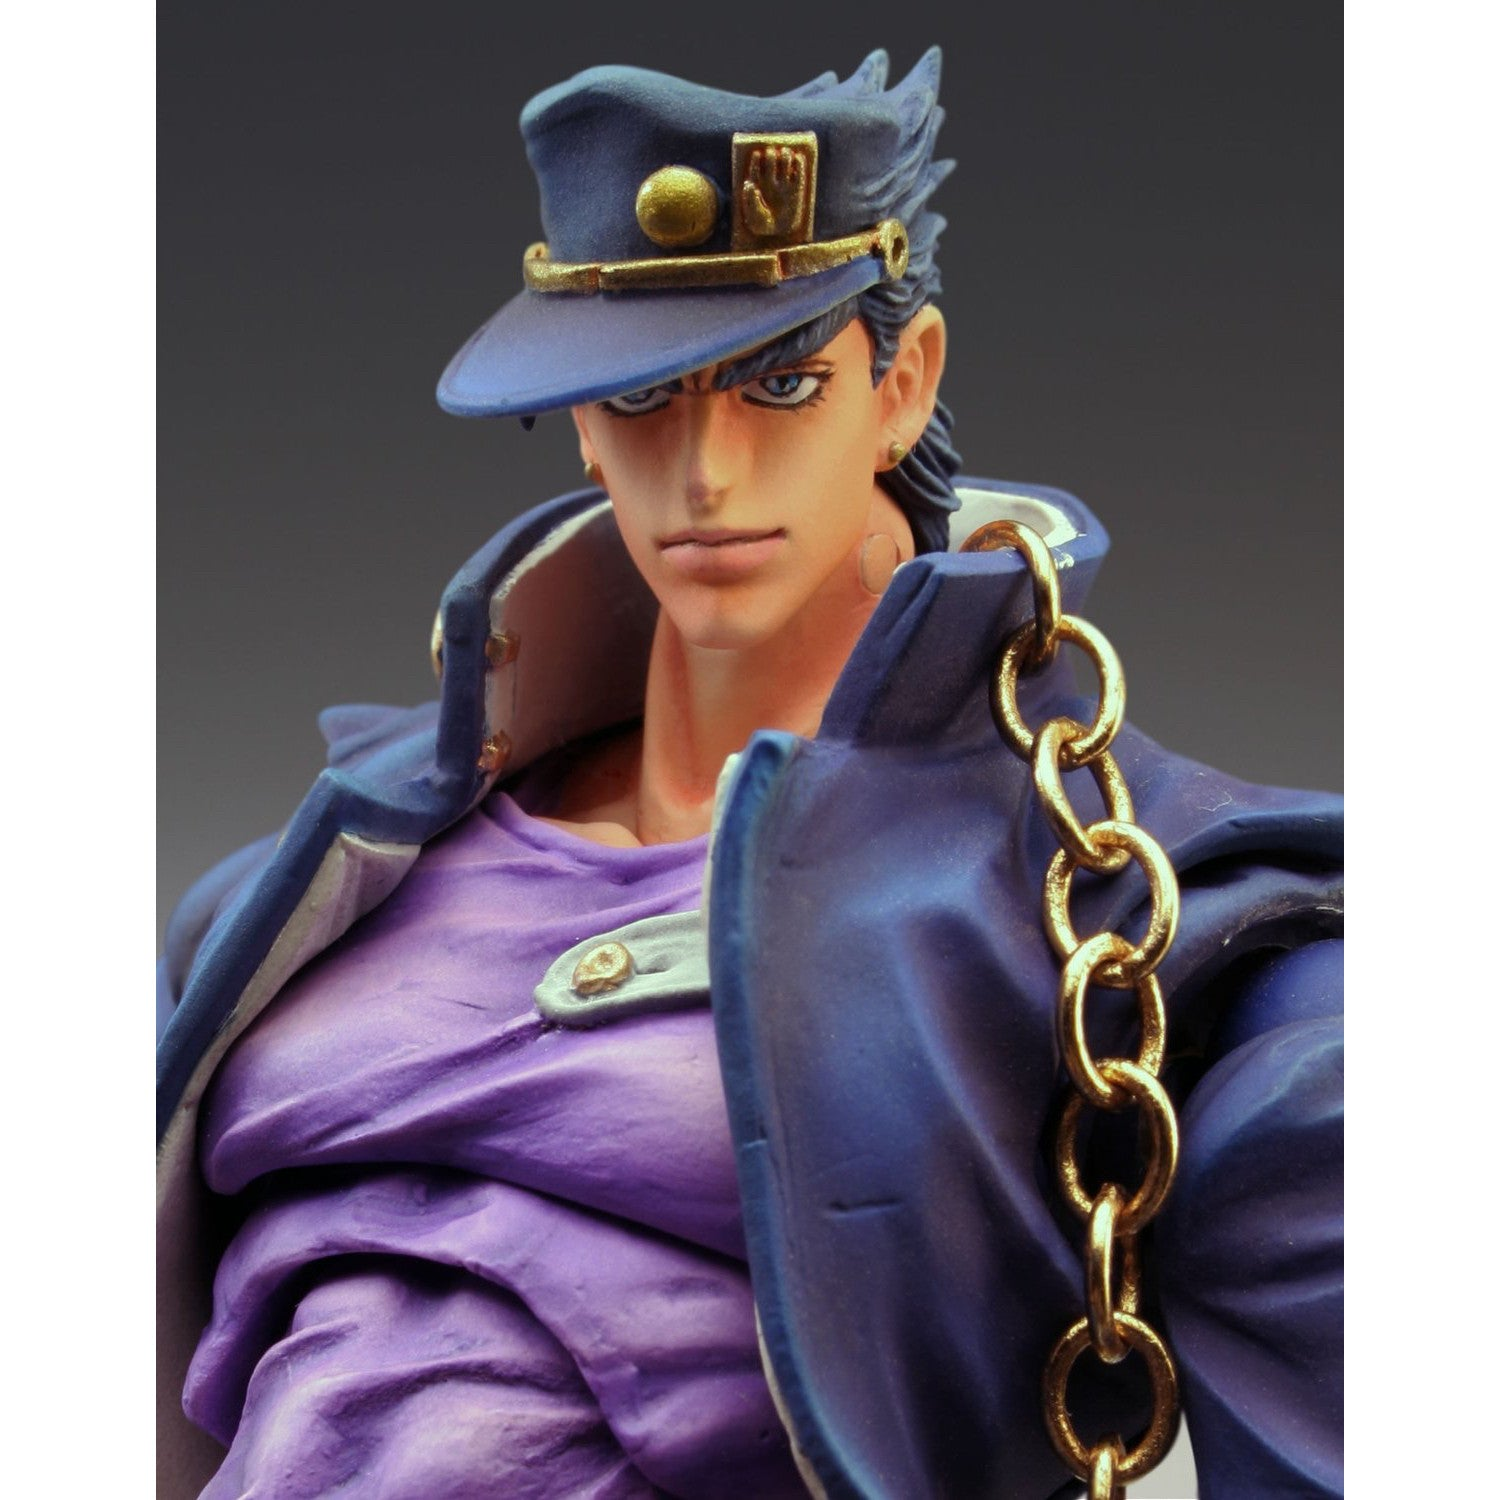 Medicos JoJo's Bizarre Adventure: Part 3--Stardust Crusaders: Jotaro Kujo Second Super Action Statue (Released)